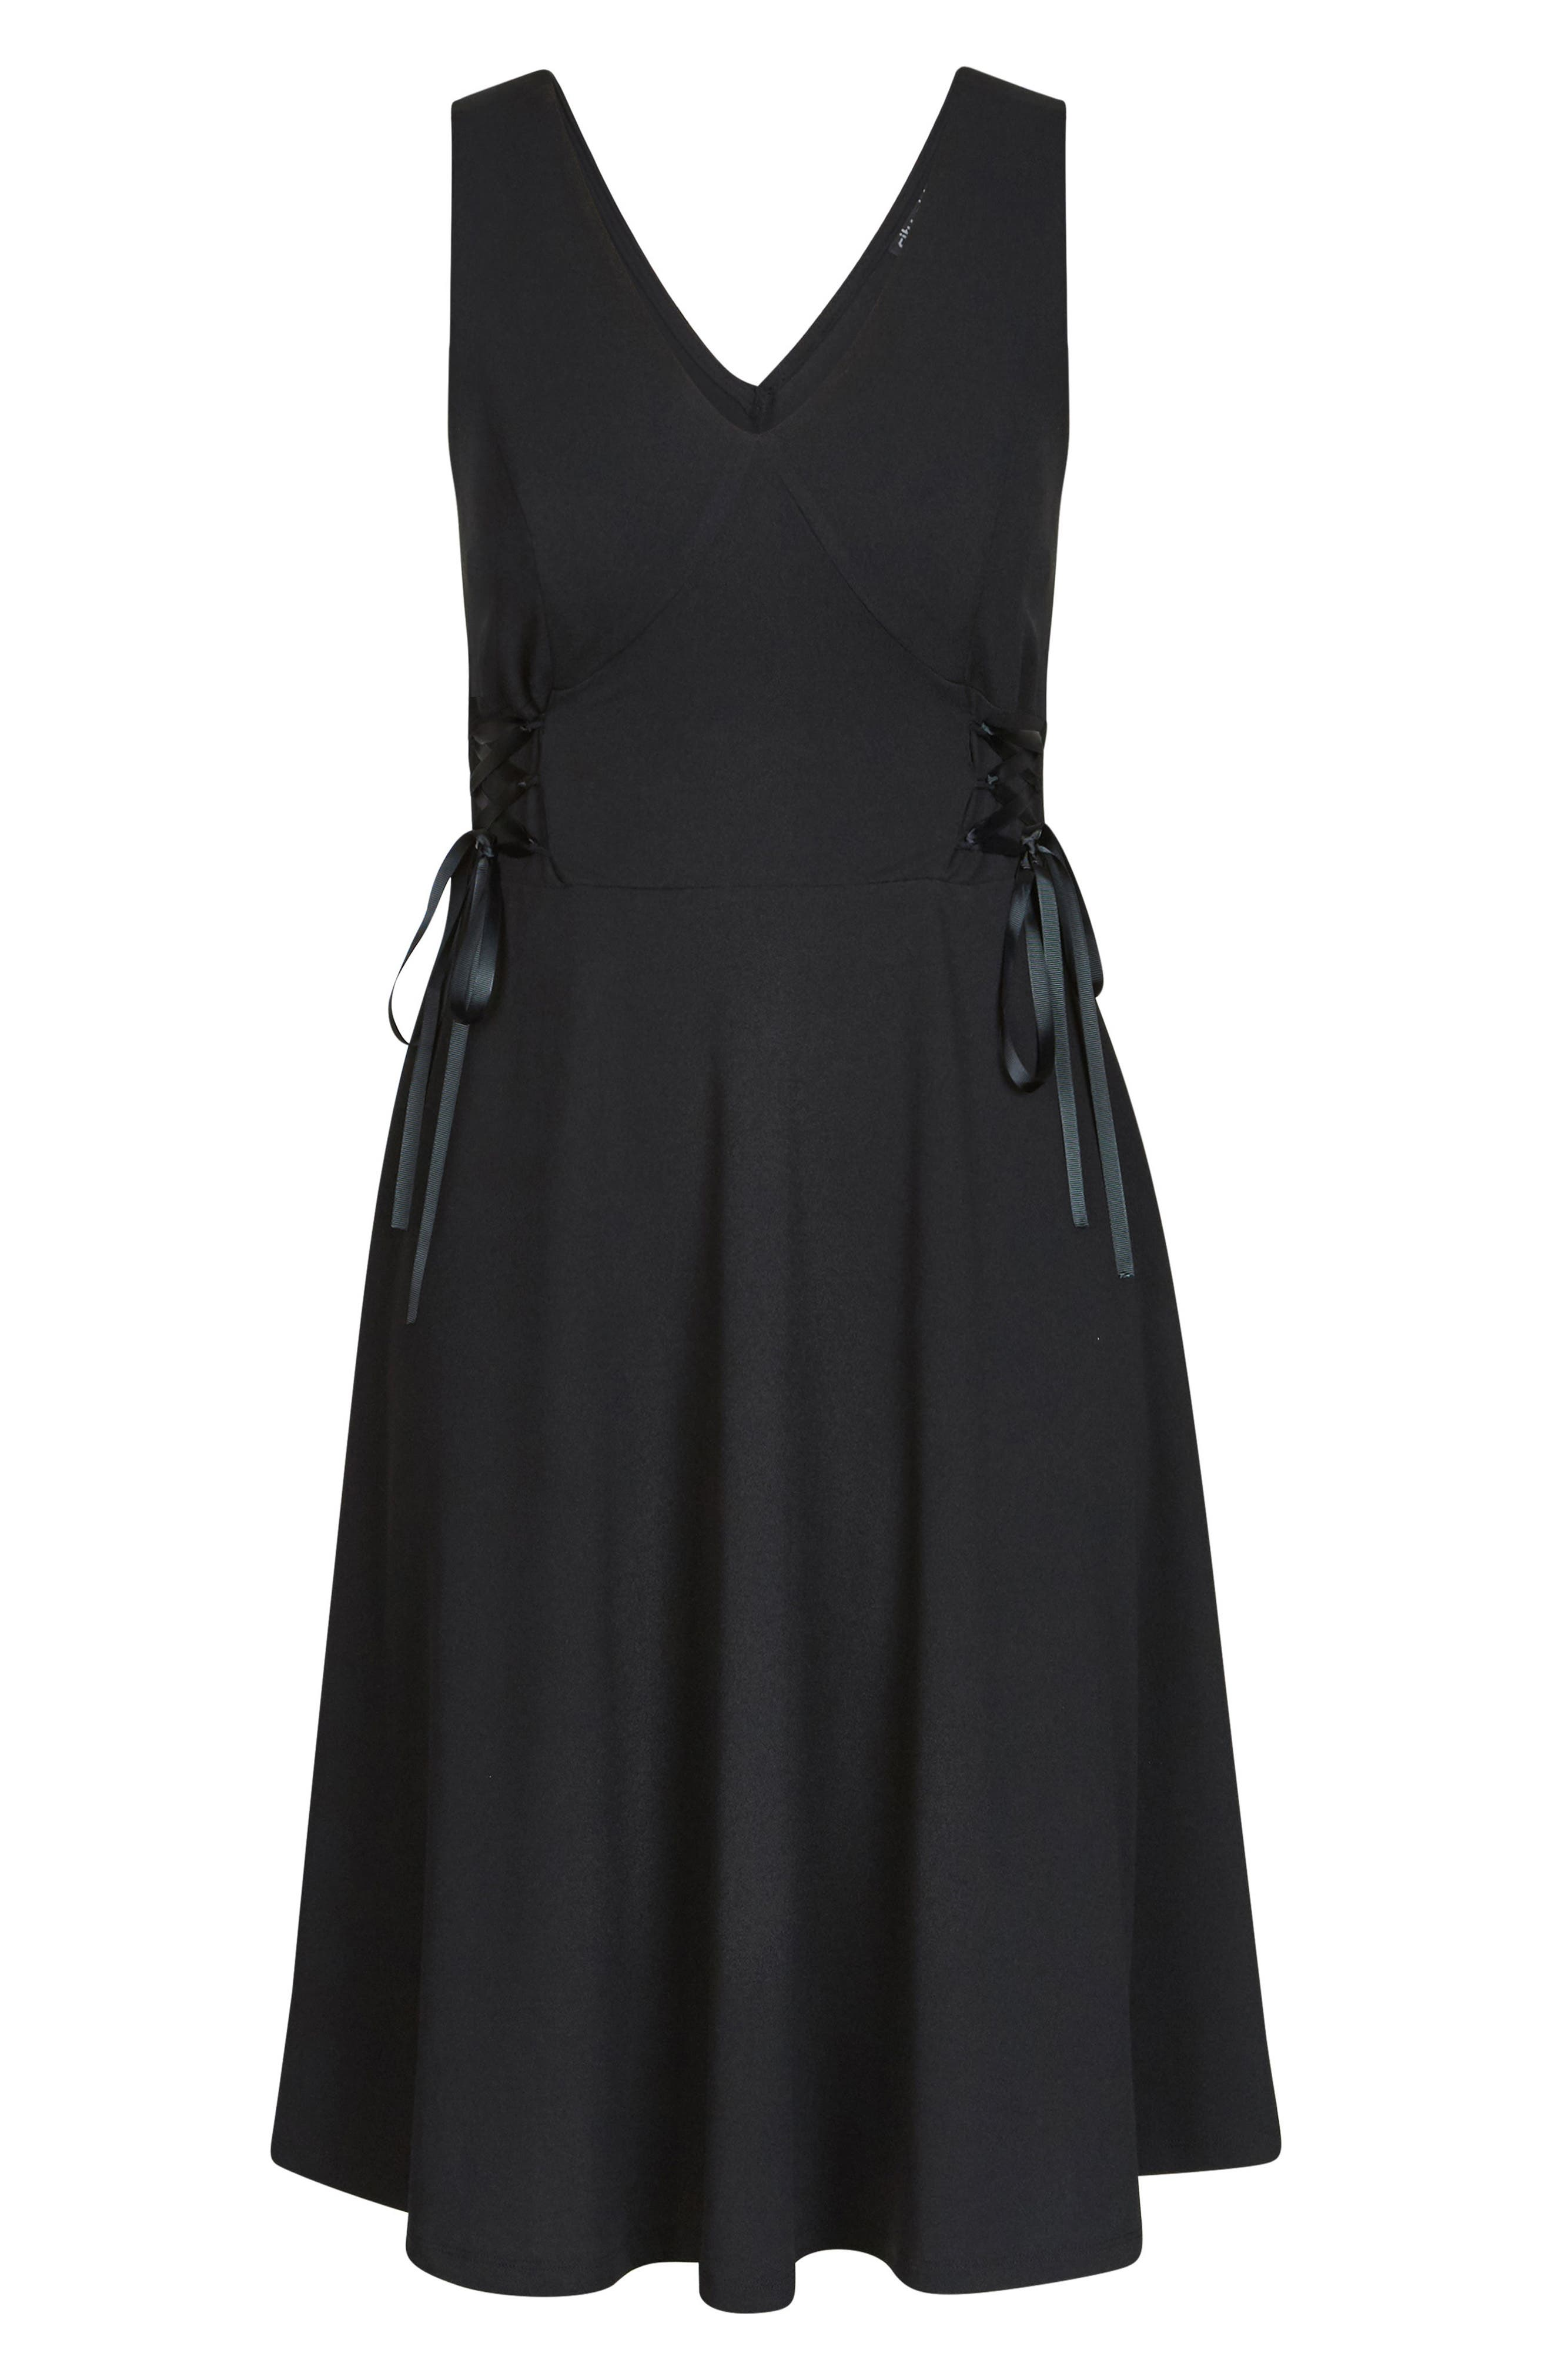 CITY CHIC,                             Fit & Flare Dress,                             Alternate thumbnail 3, color,                             011